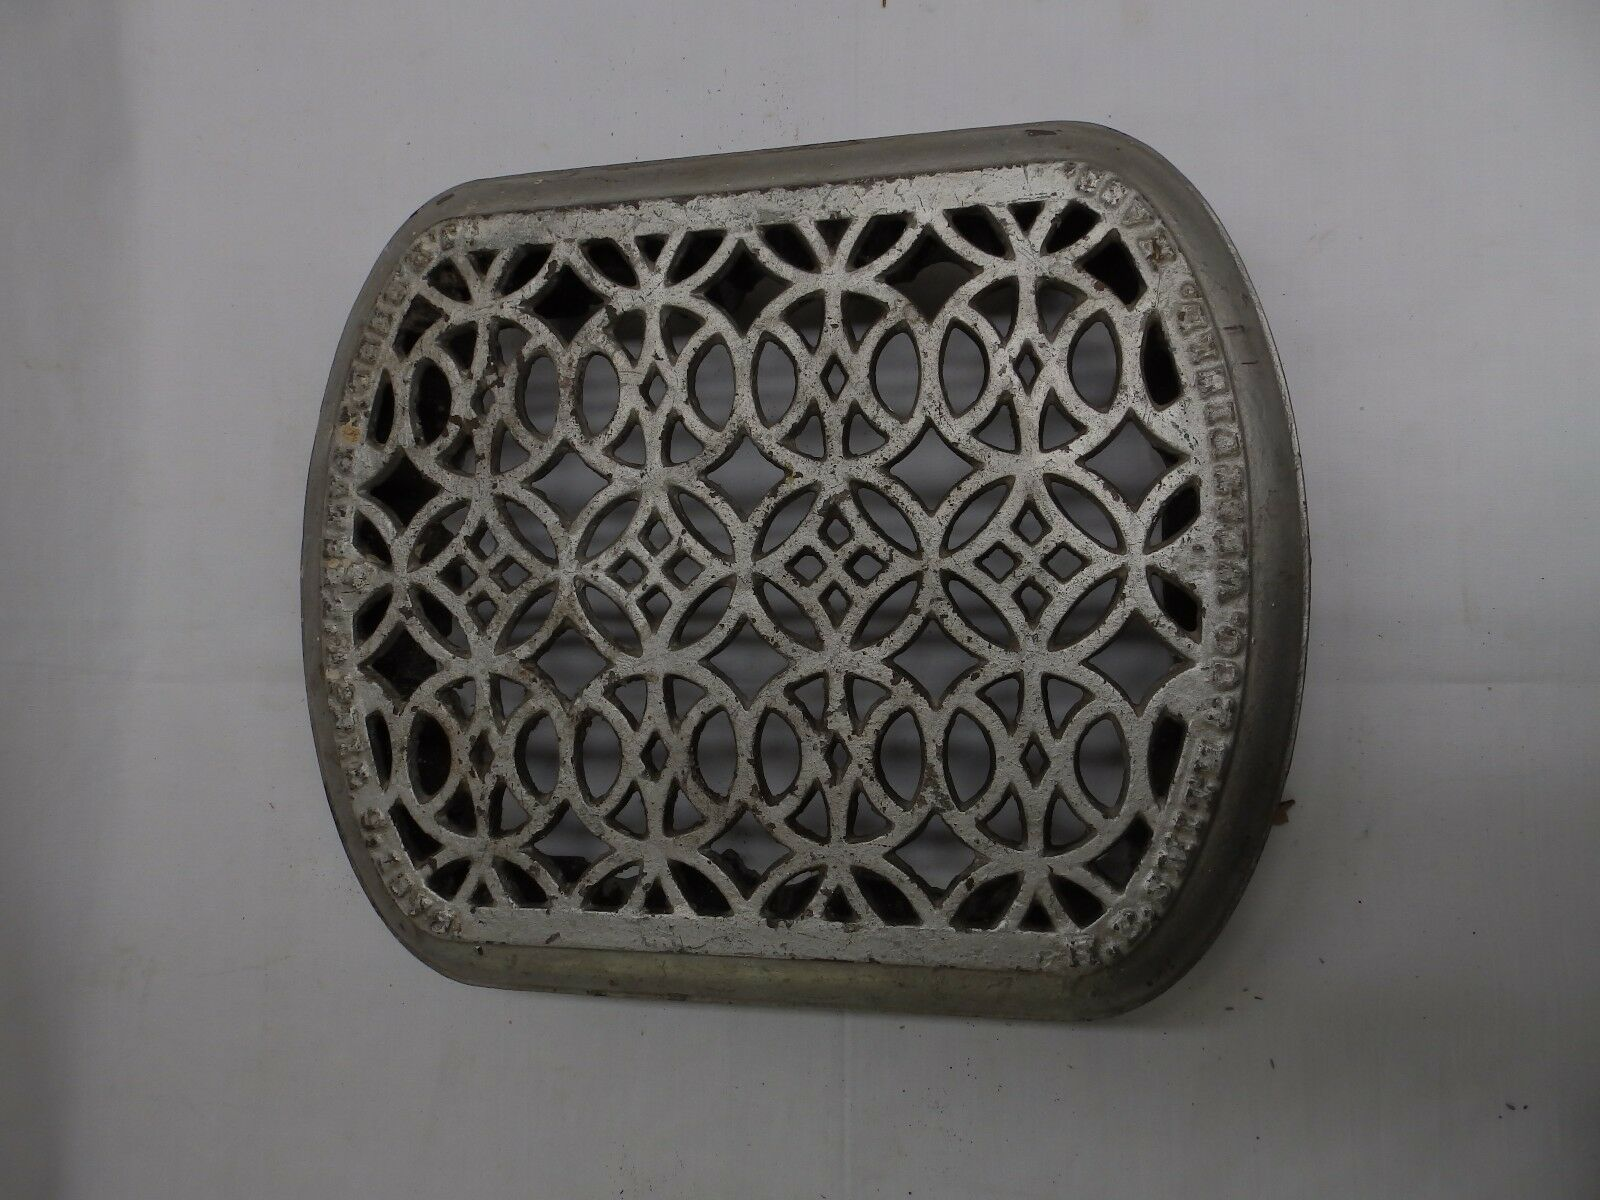 Small  Antique Cast Iron Radiator Cover Decorative Old Vintage Hardware 4919-15